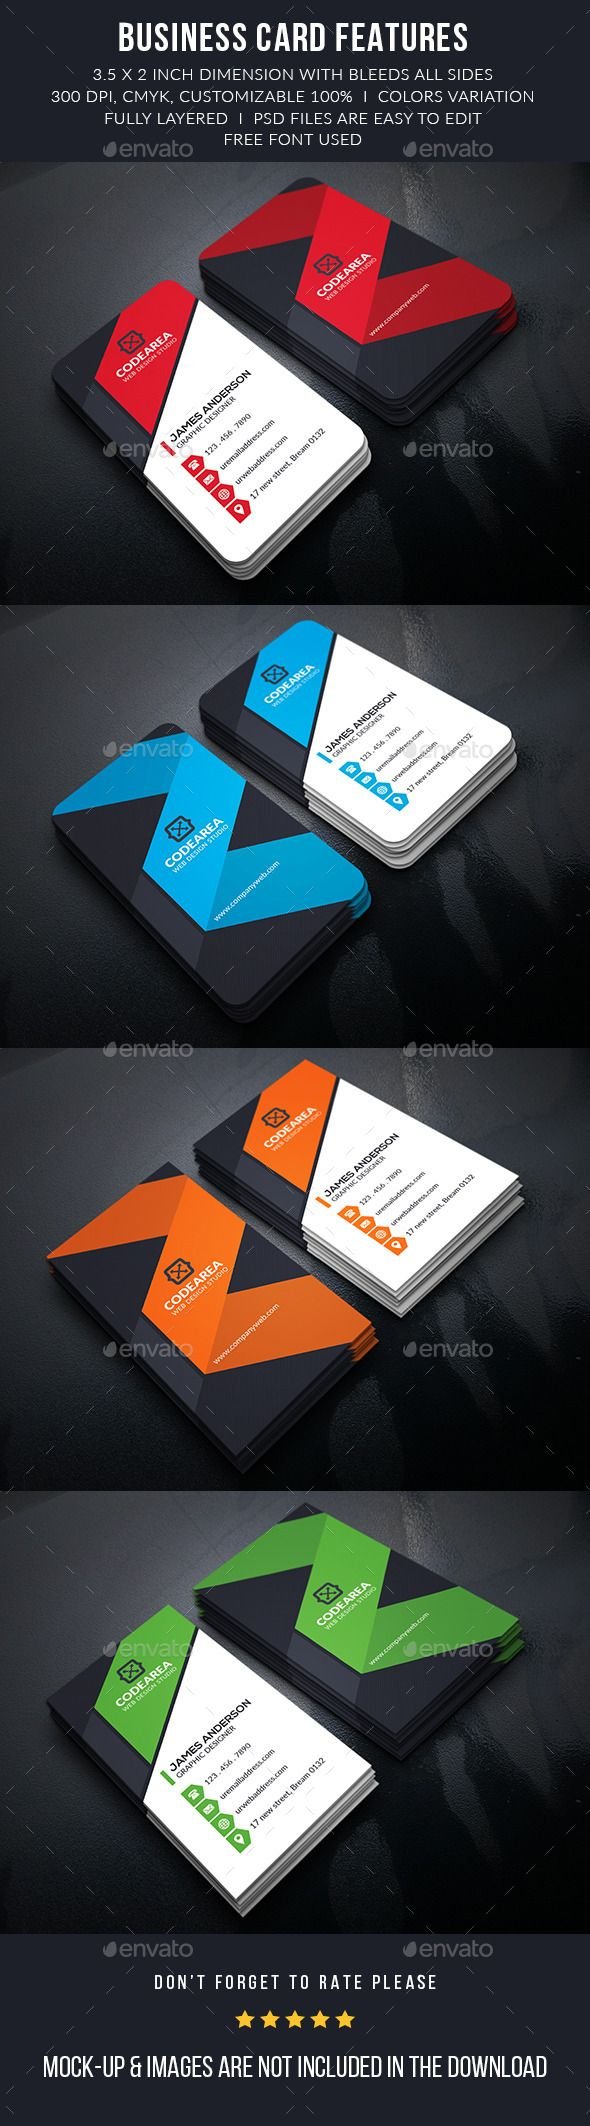 9365 best professional business cards images on pinterest business shape corporate business cards reheart Images